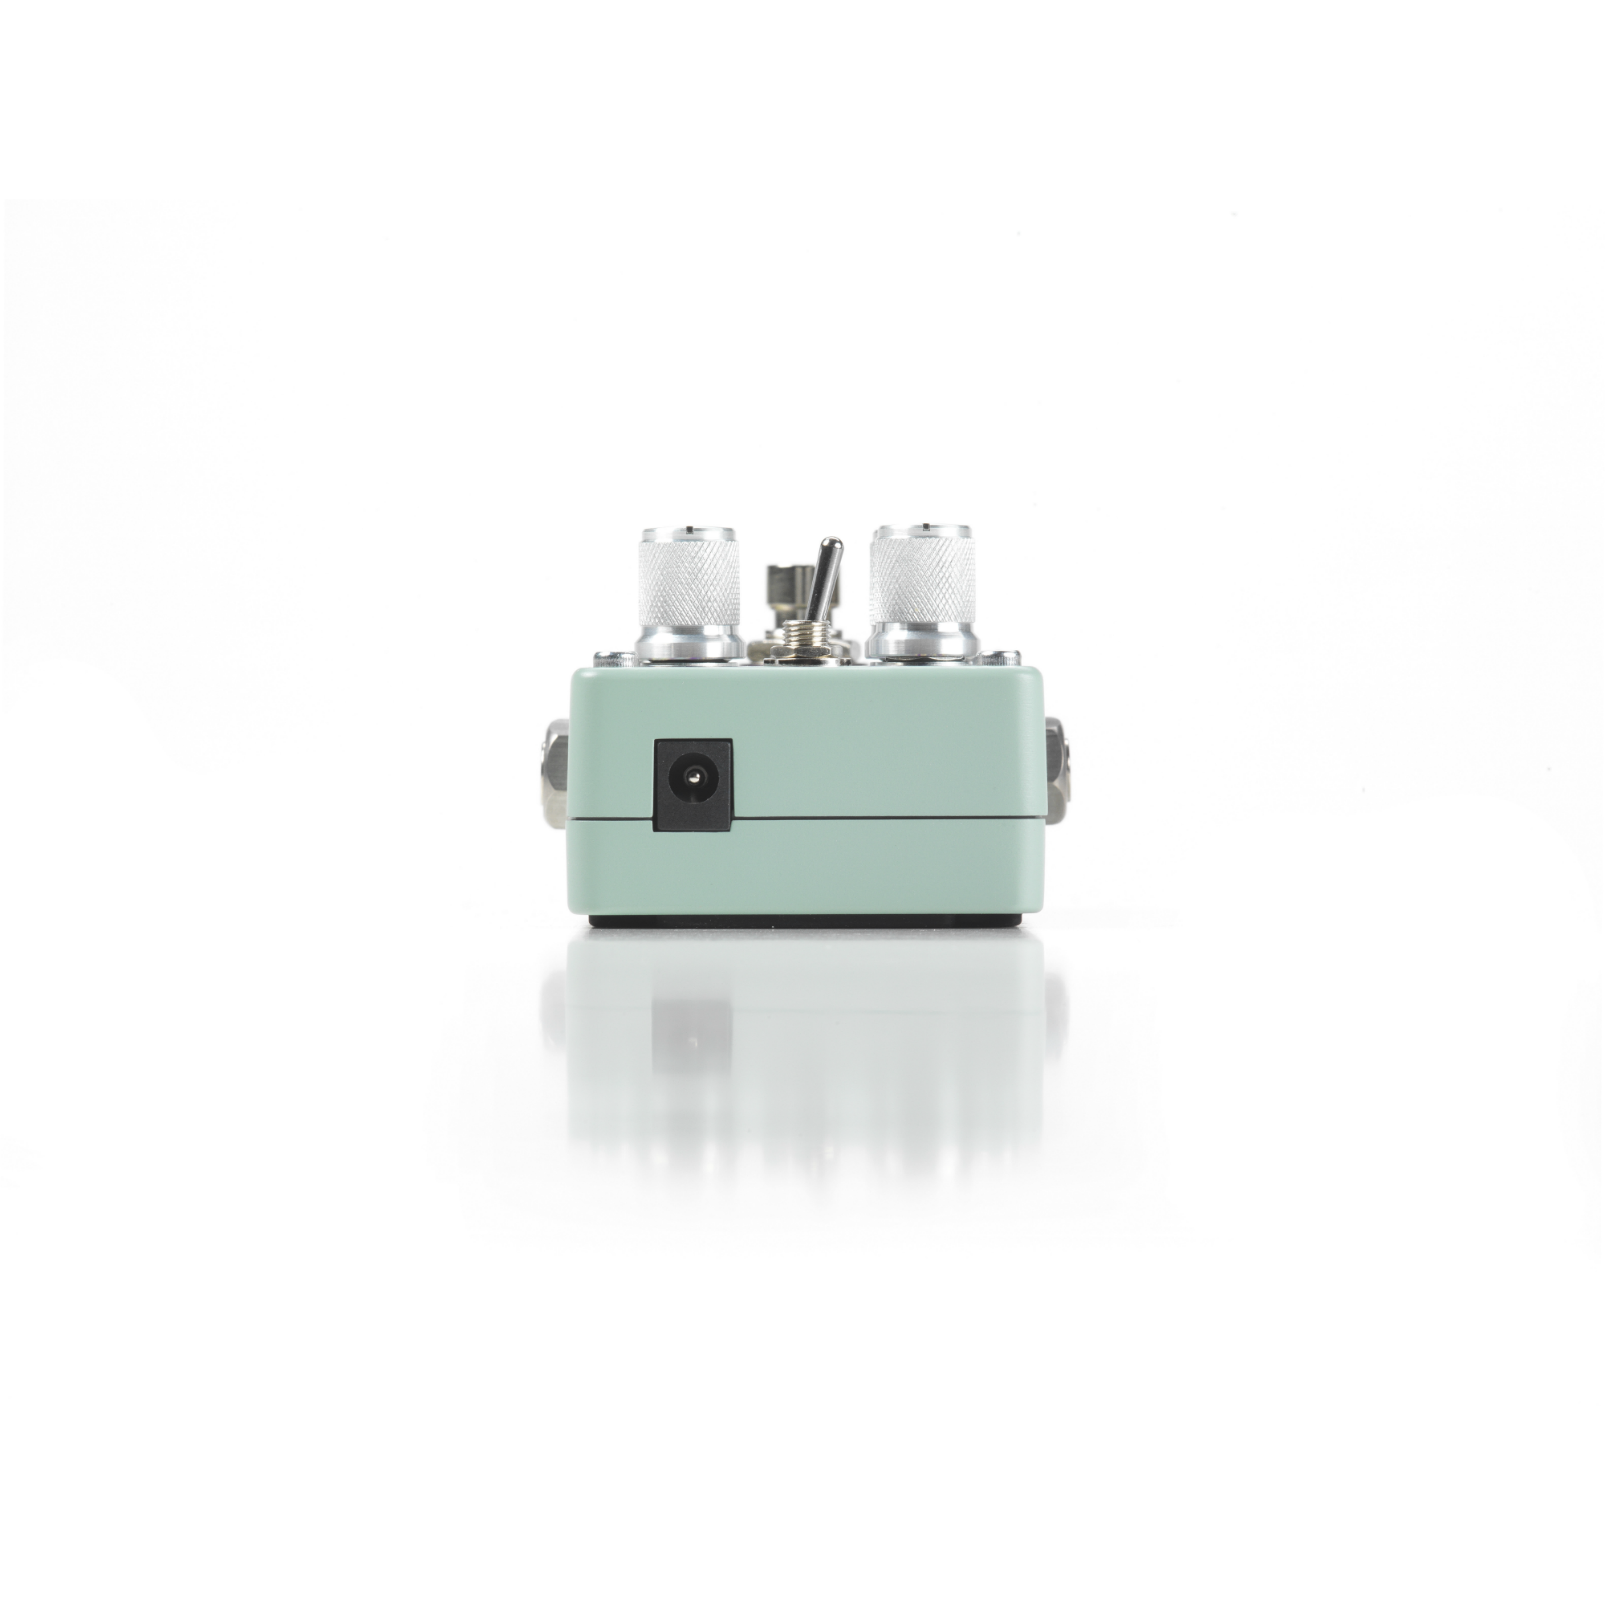 Polara (discontinued) - Green - Reverb Pedal - Back